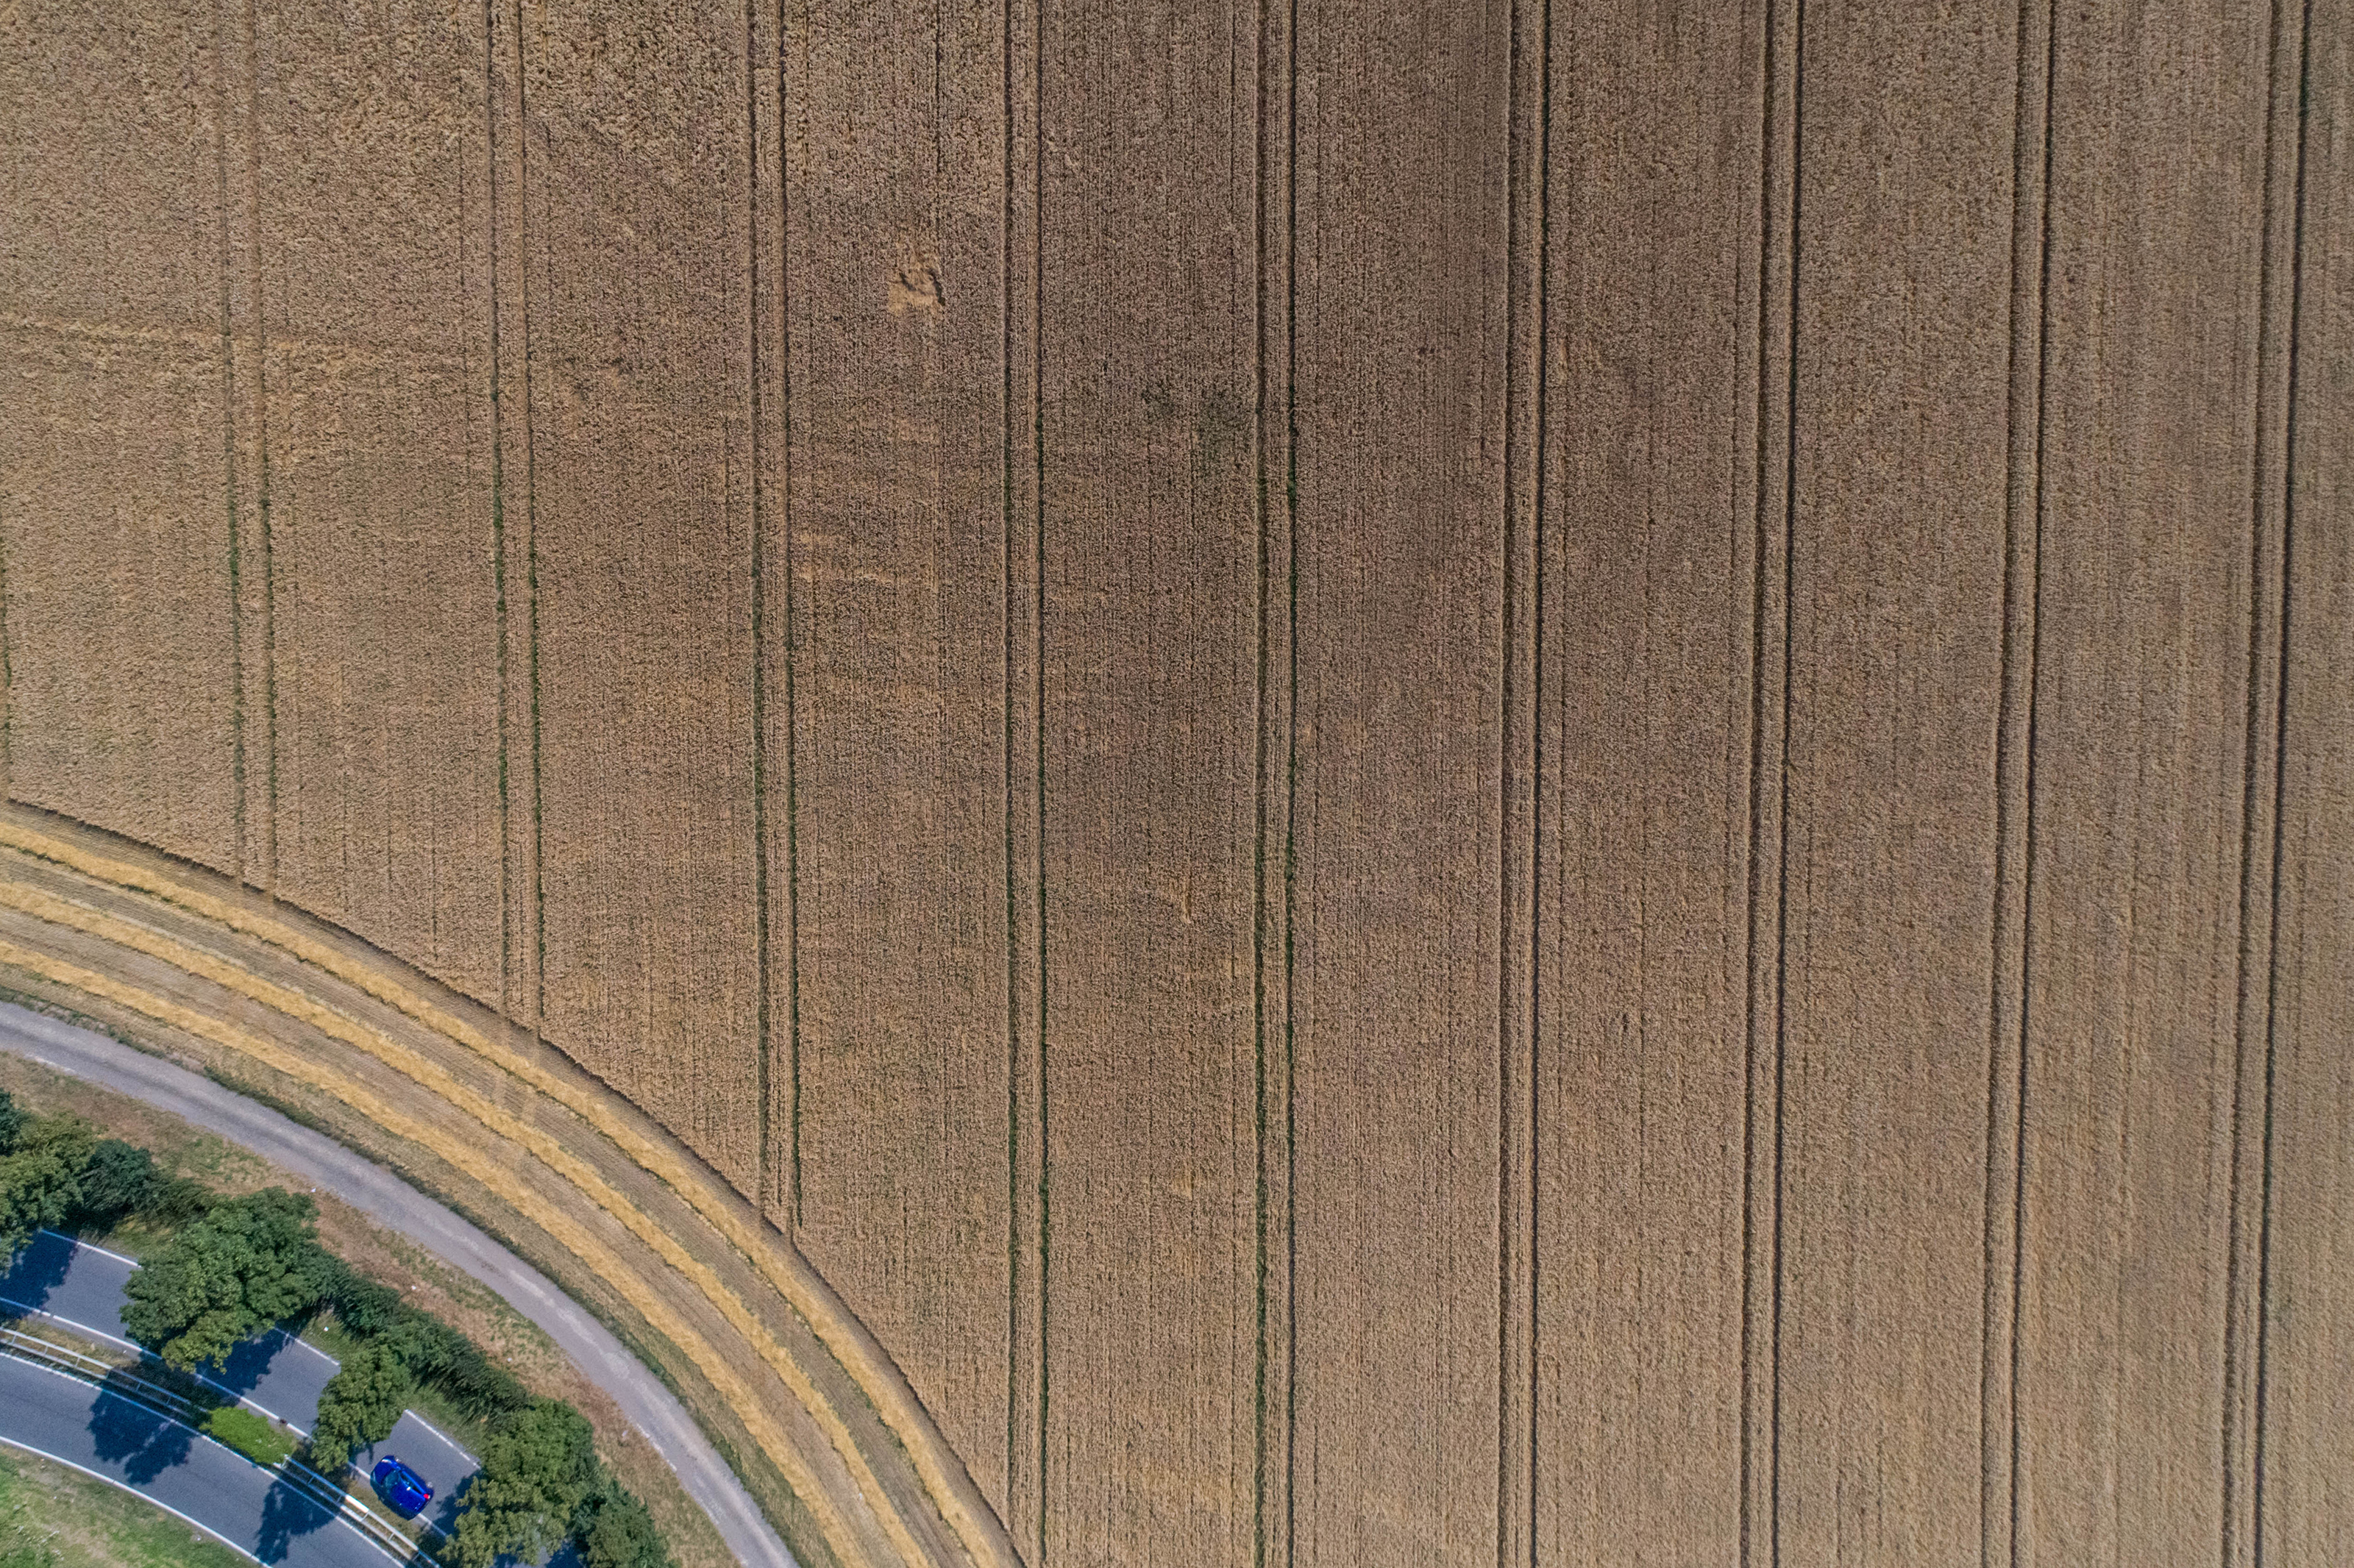 Aerial view of wheat field and tracks from tractor. Beautiful agricultural texture or background of summer agriculture landscape. Wheat farm from above.